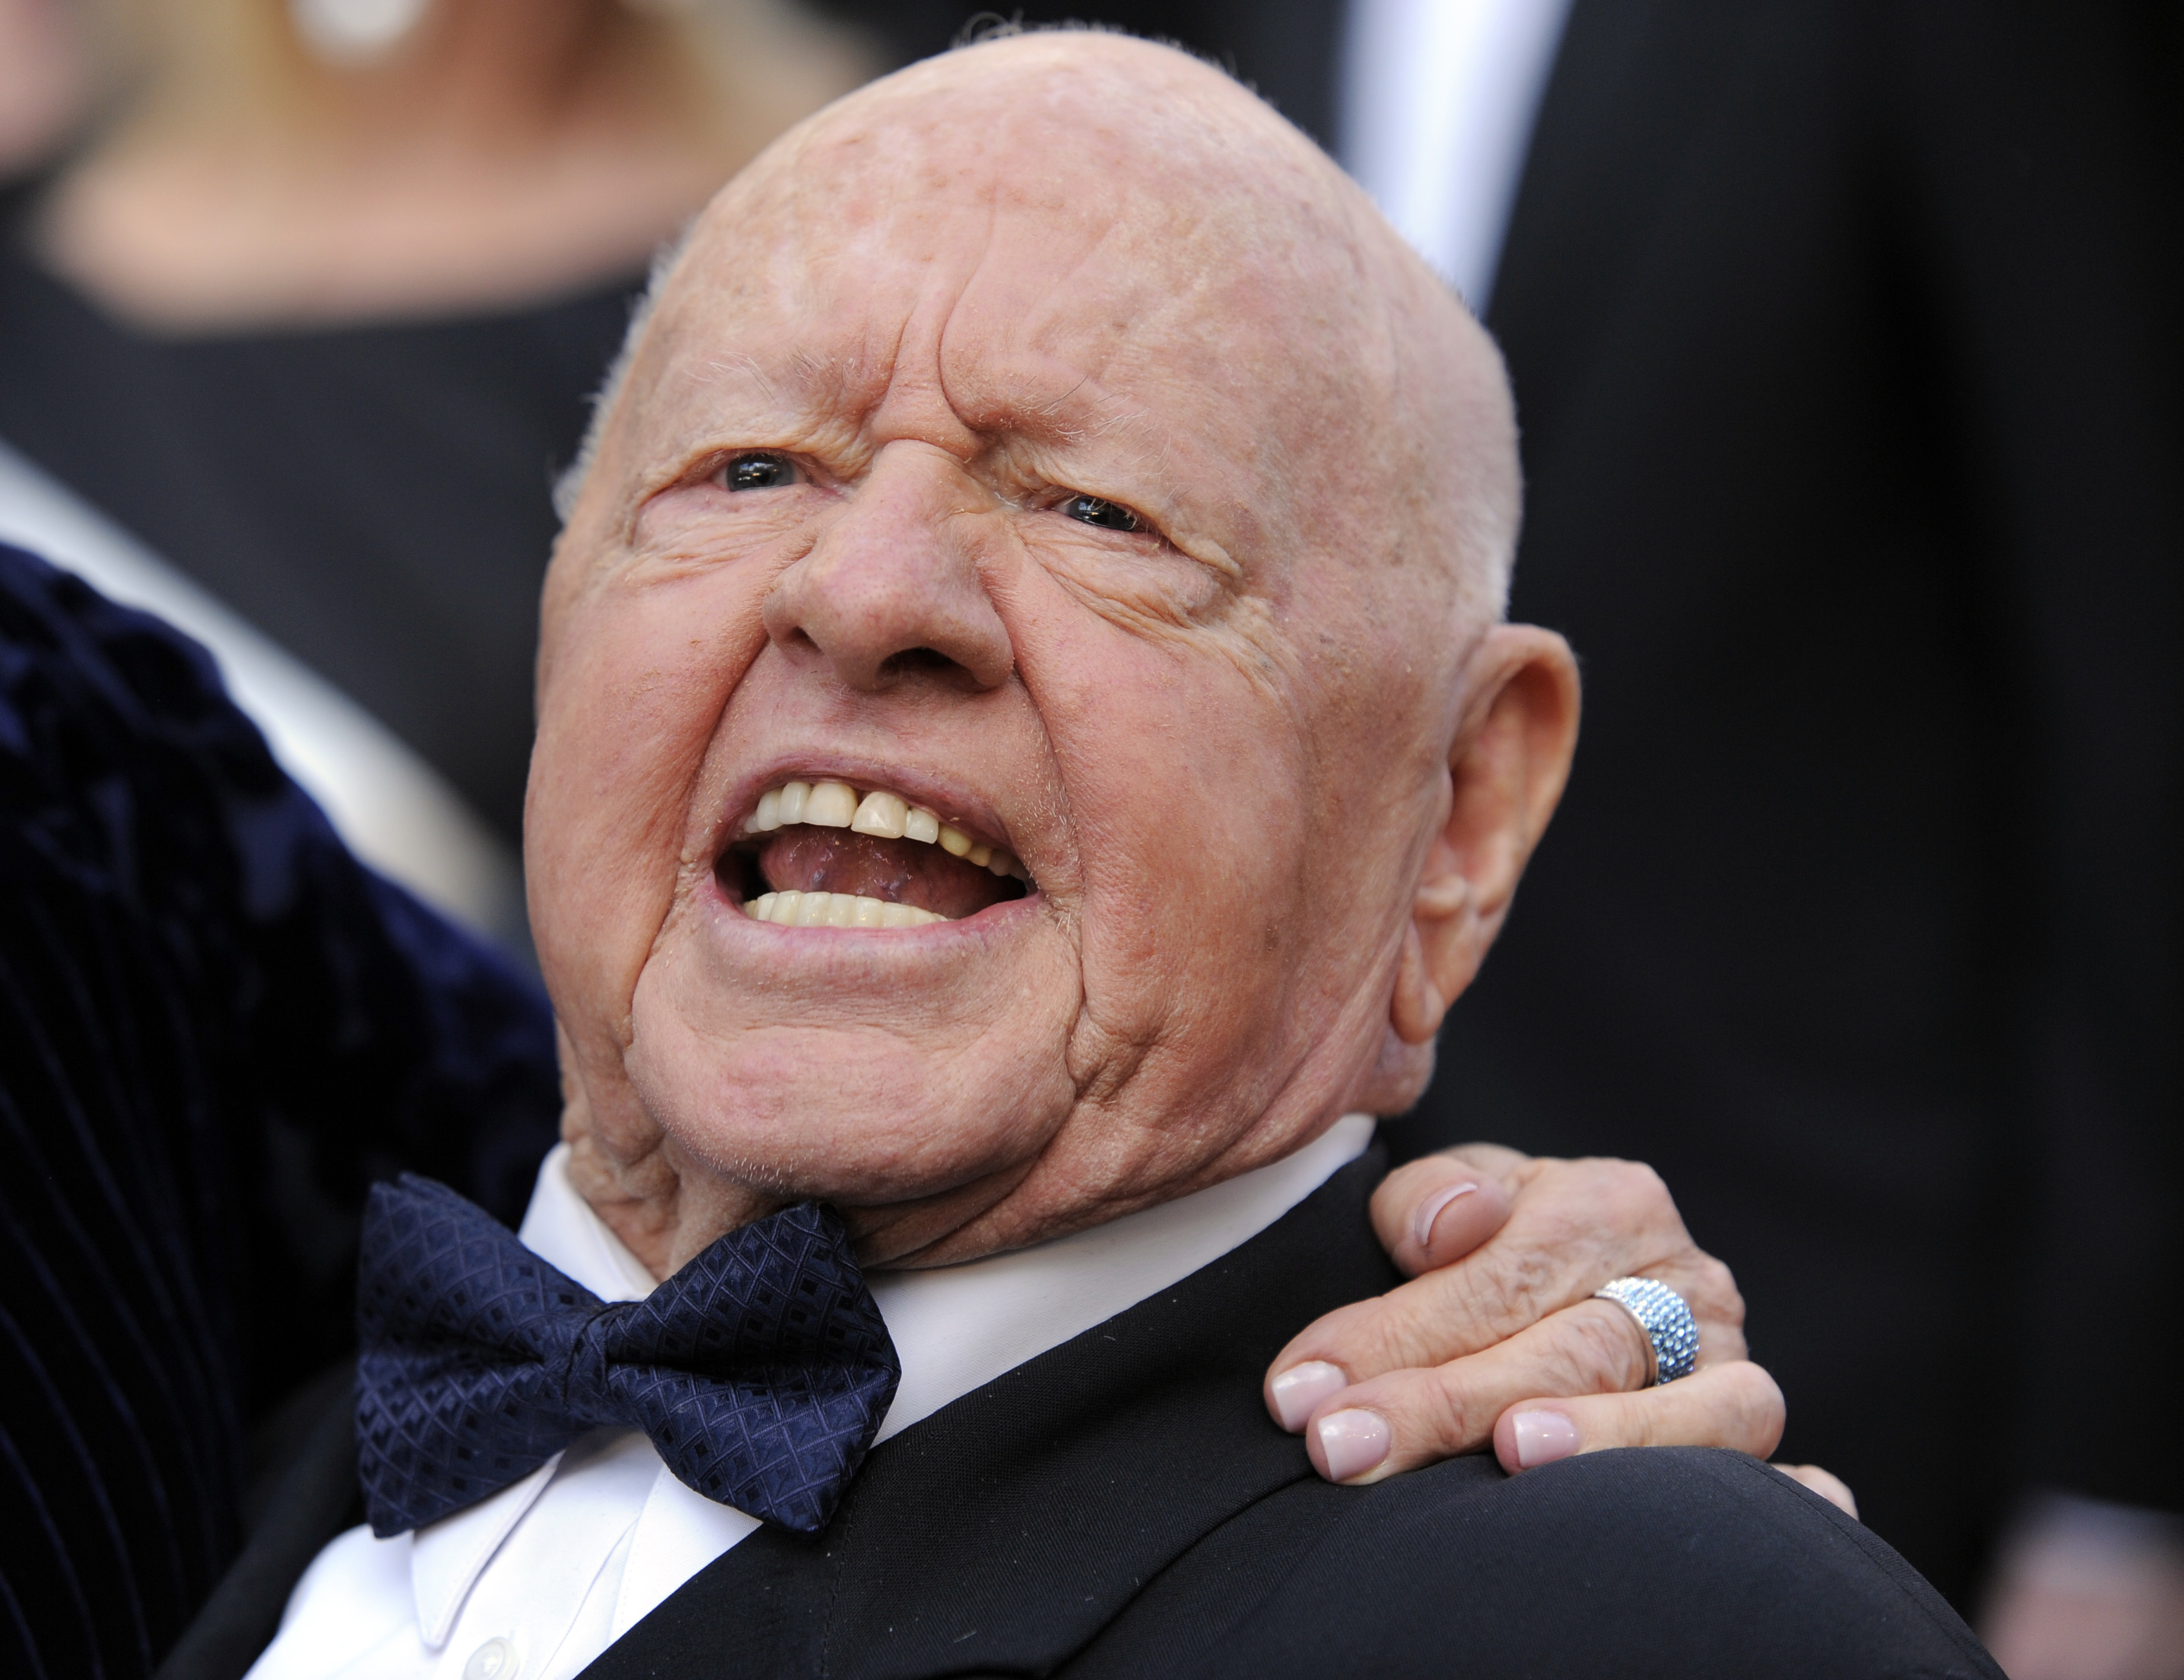 Mickey Rooney at the 82nd Academy Awards. (AP Photo/Chris Pizzello, file)